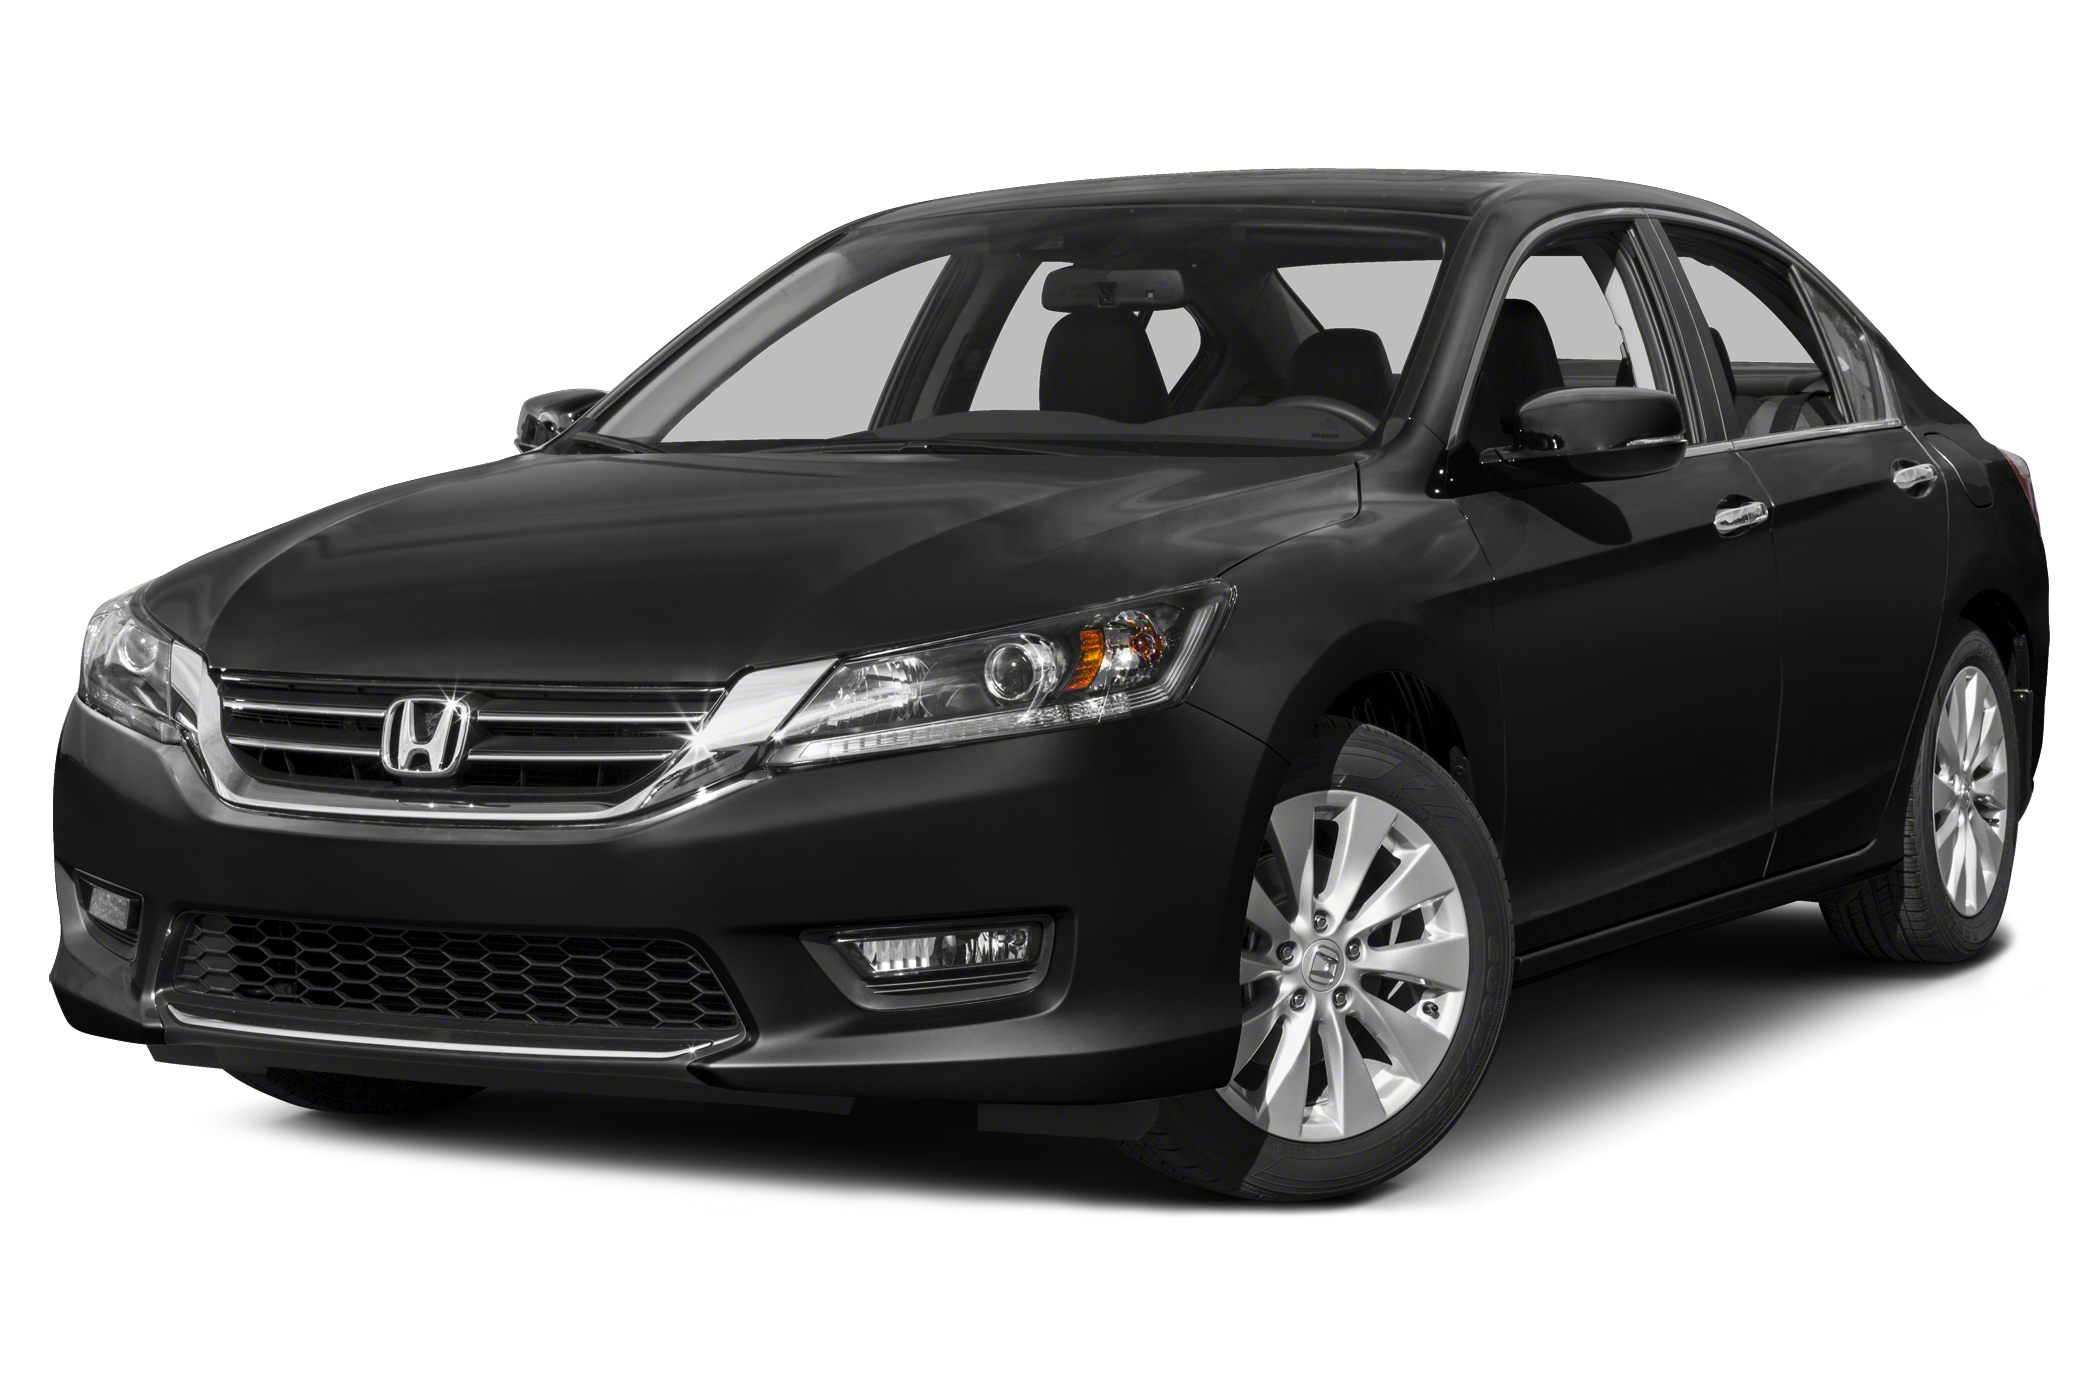 2015 Honda Accord EX-L HERES A LOADED ACOORDV6LEATHERGORGEOUS WITH ONLY 11K MILES FOLKSSAVE